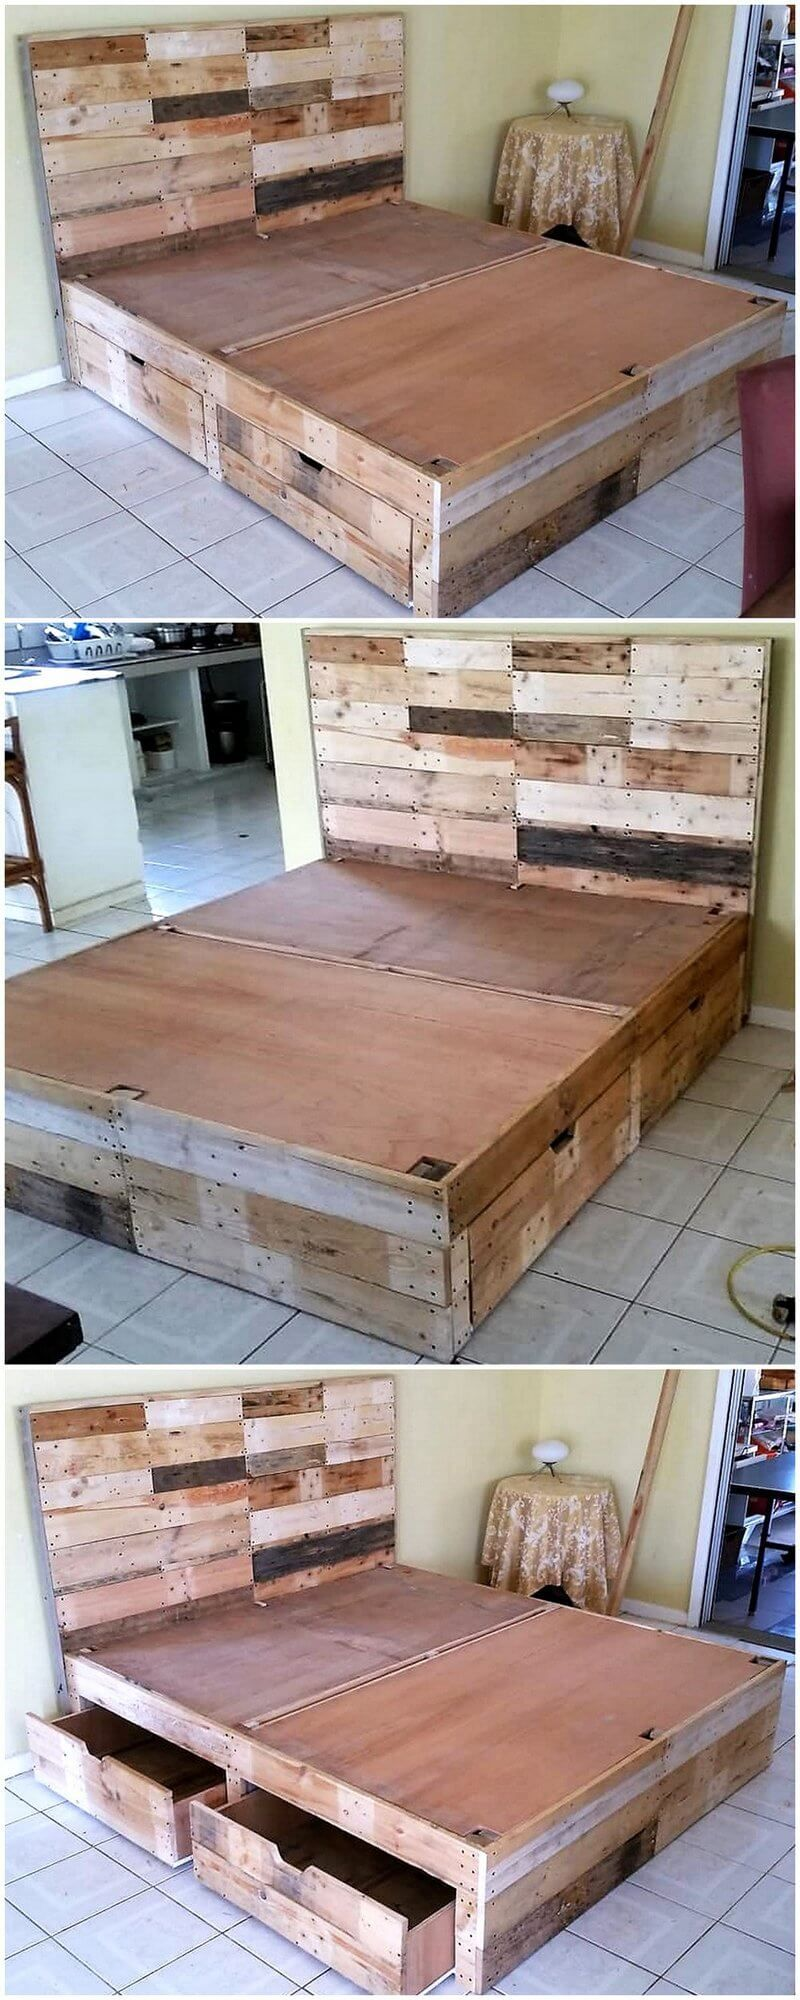 Original Diy Ideas For Wooden Pallets Recycling Wooden Pallet